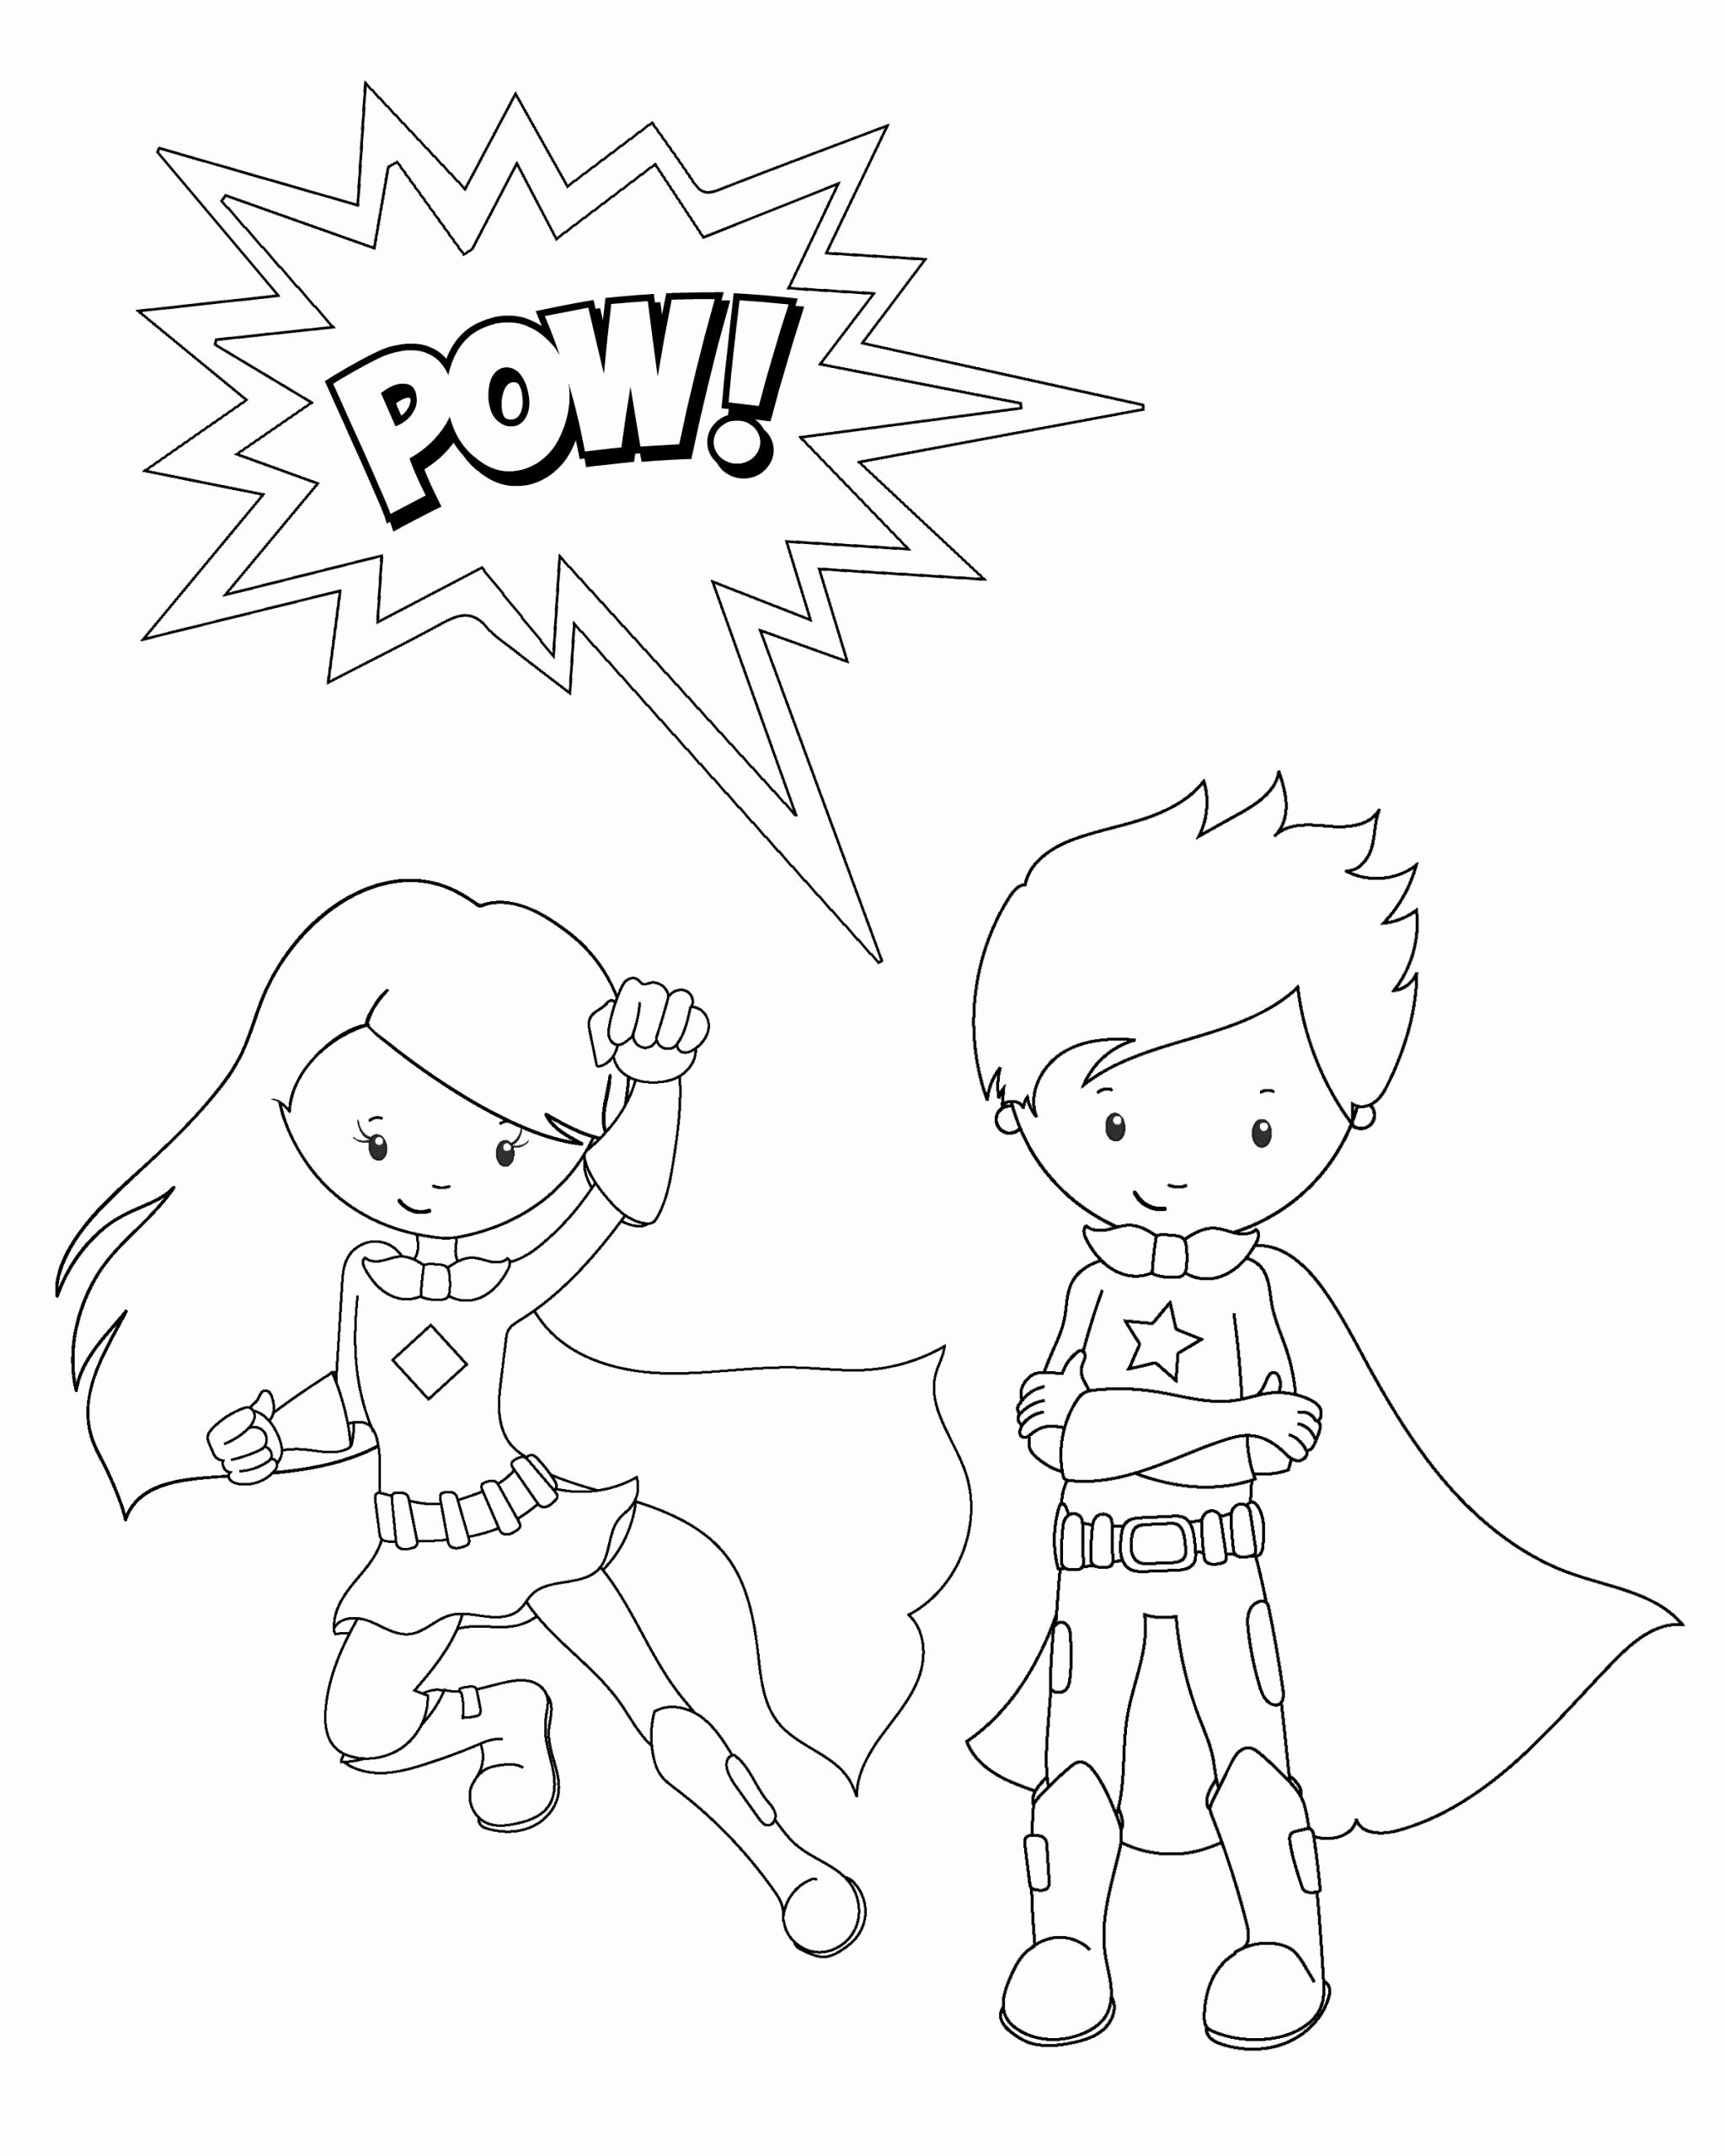 Printable Coloring Pages For Kids Superhero Super Hero Coloring Sheets Superhero Coloring Superhero Coloring Pages